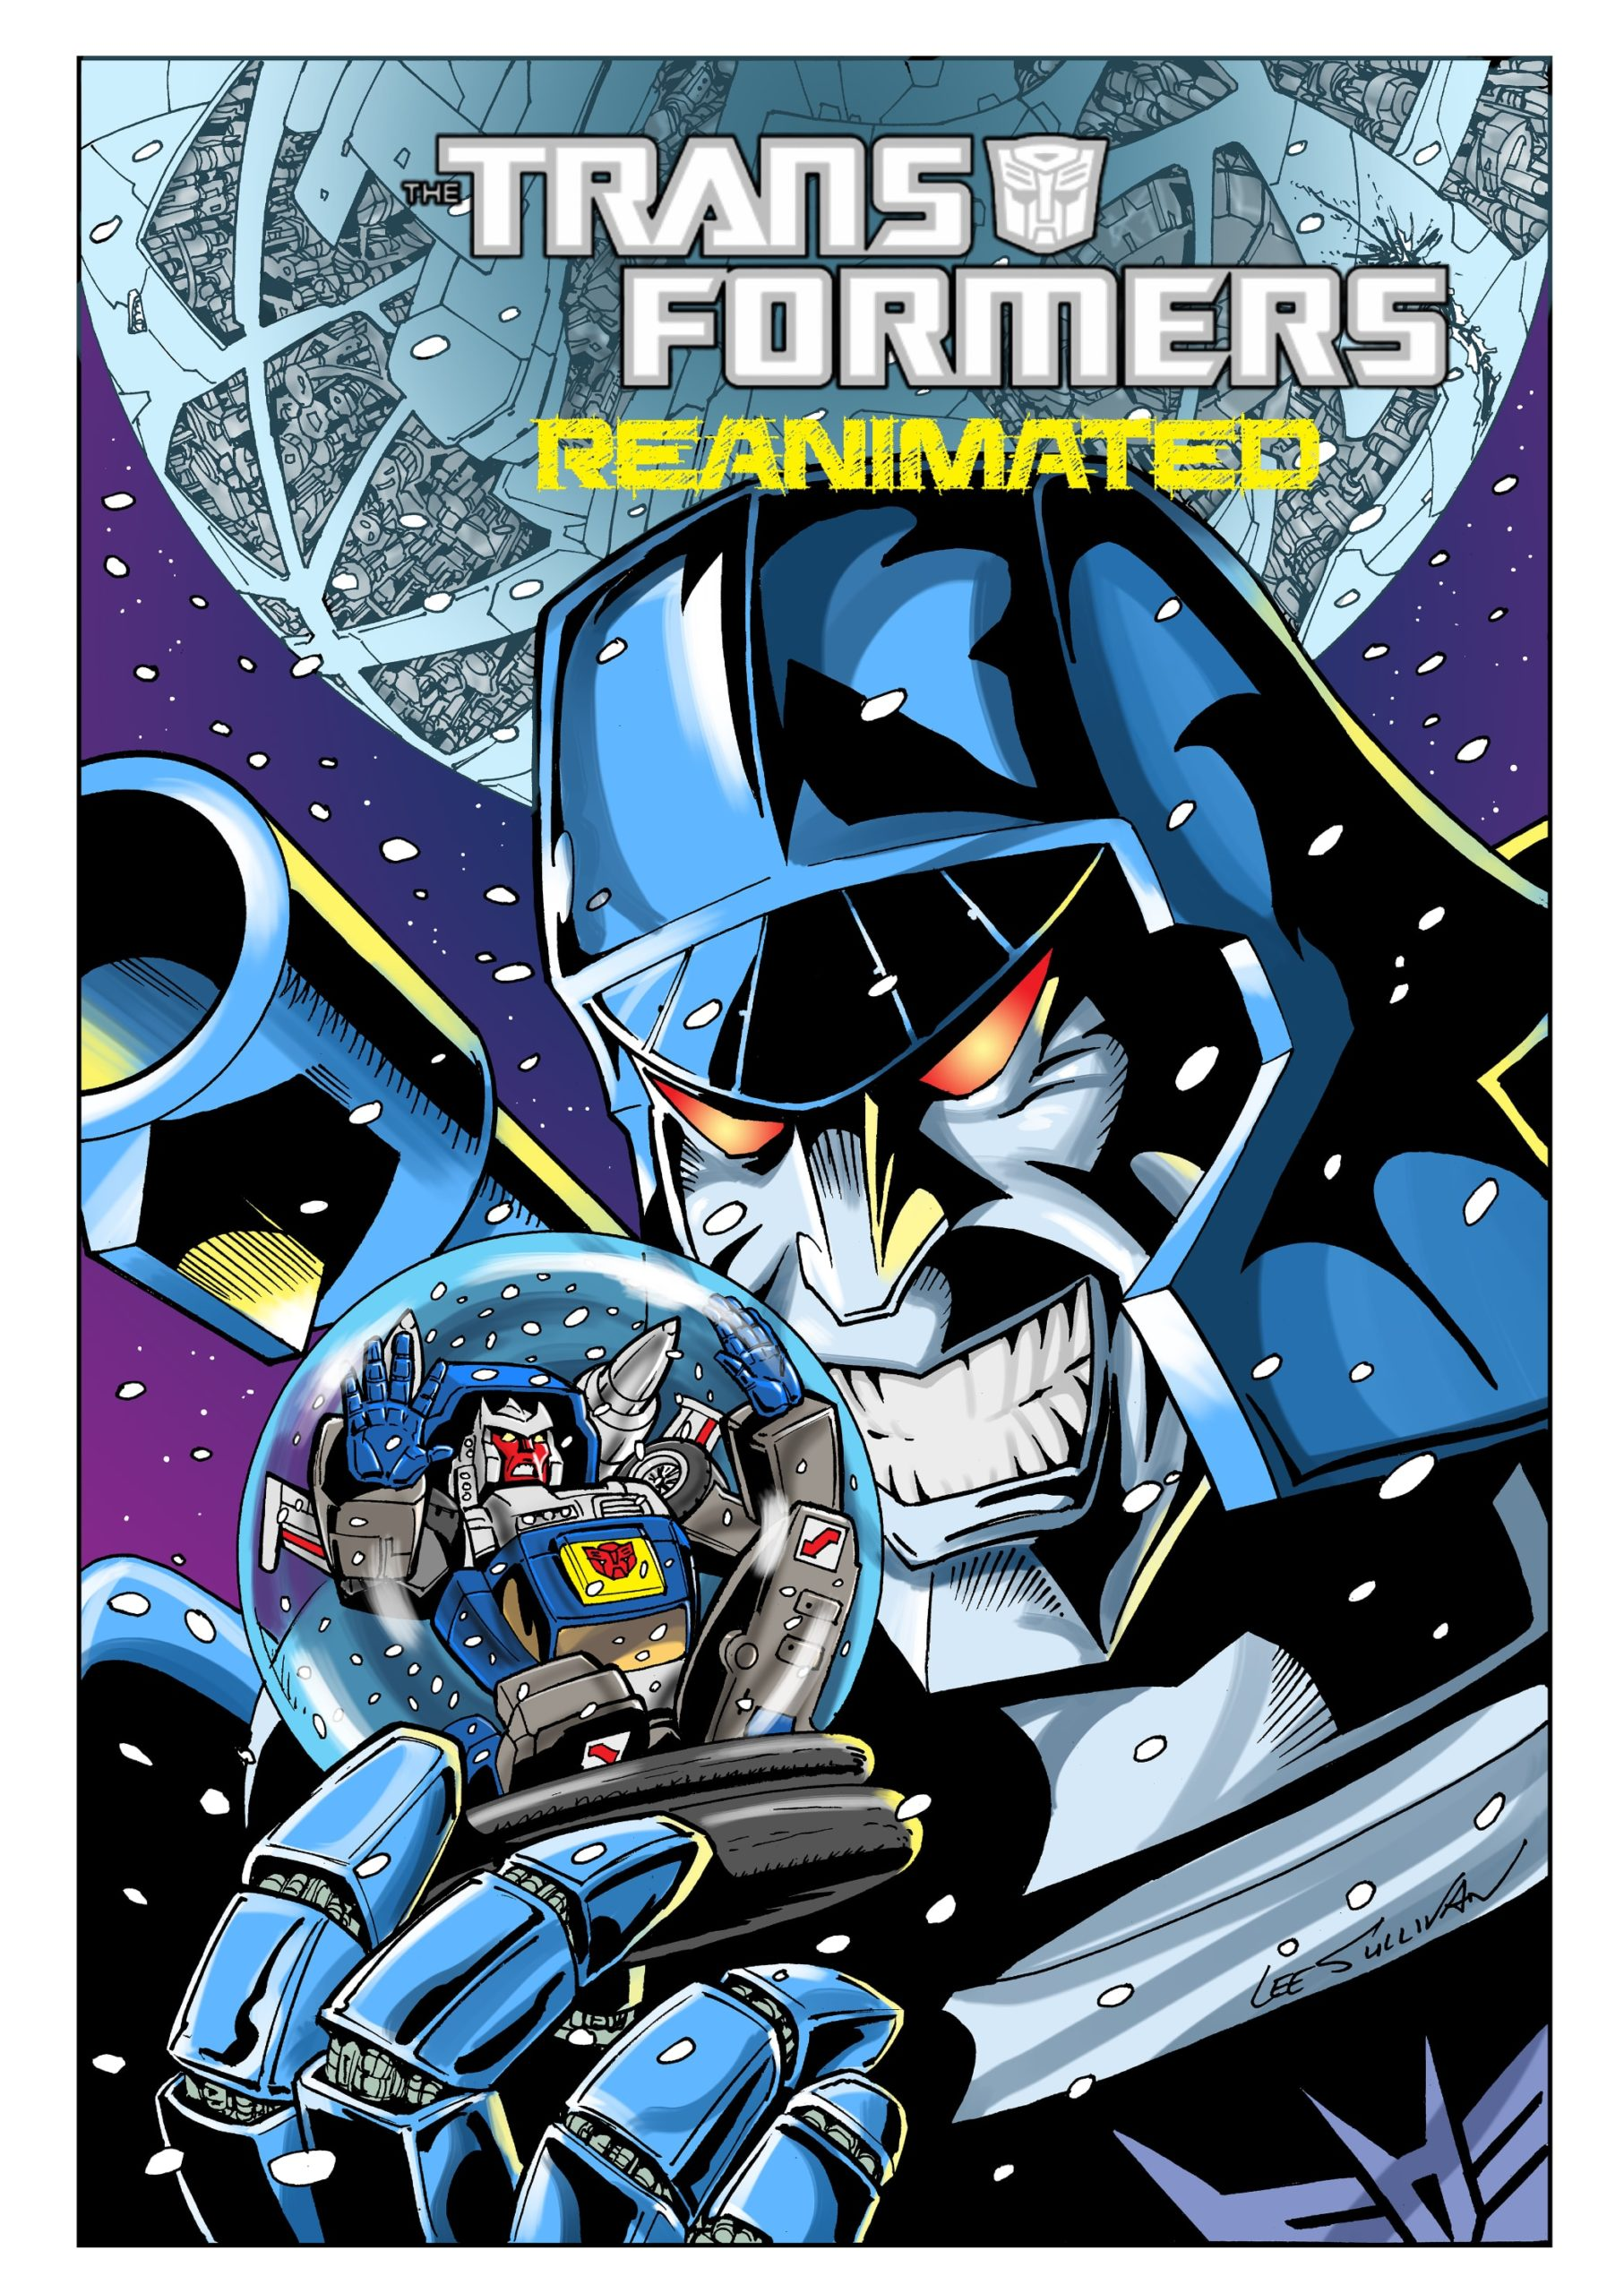 Transformers: REANIMATED Issue 5: A Transformers Christmas Carol